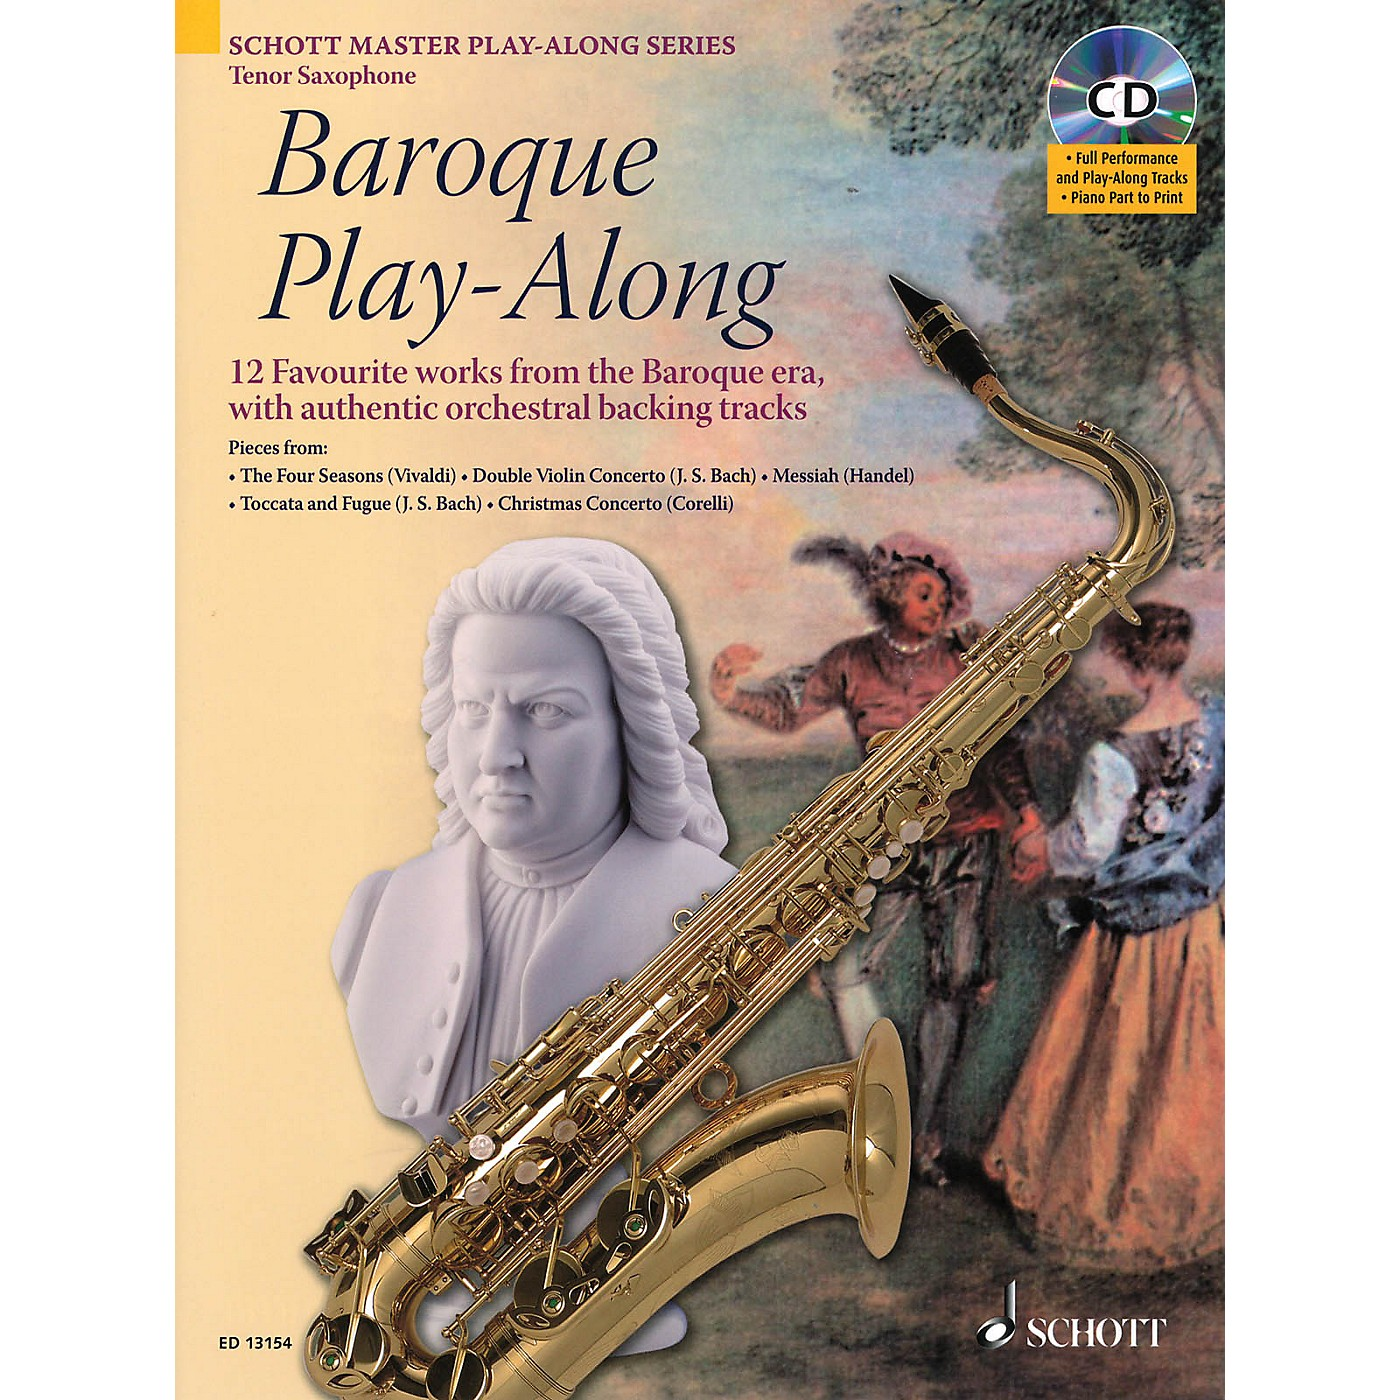 Schott Baroque Play-Along (12 Favorite Works from the Baroque Era) Instrumental Play-Along Series thumbnail